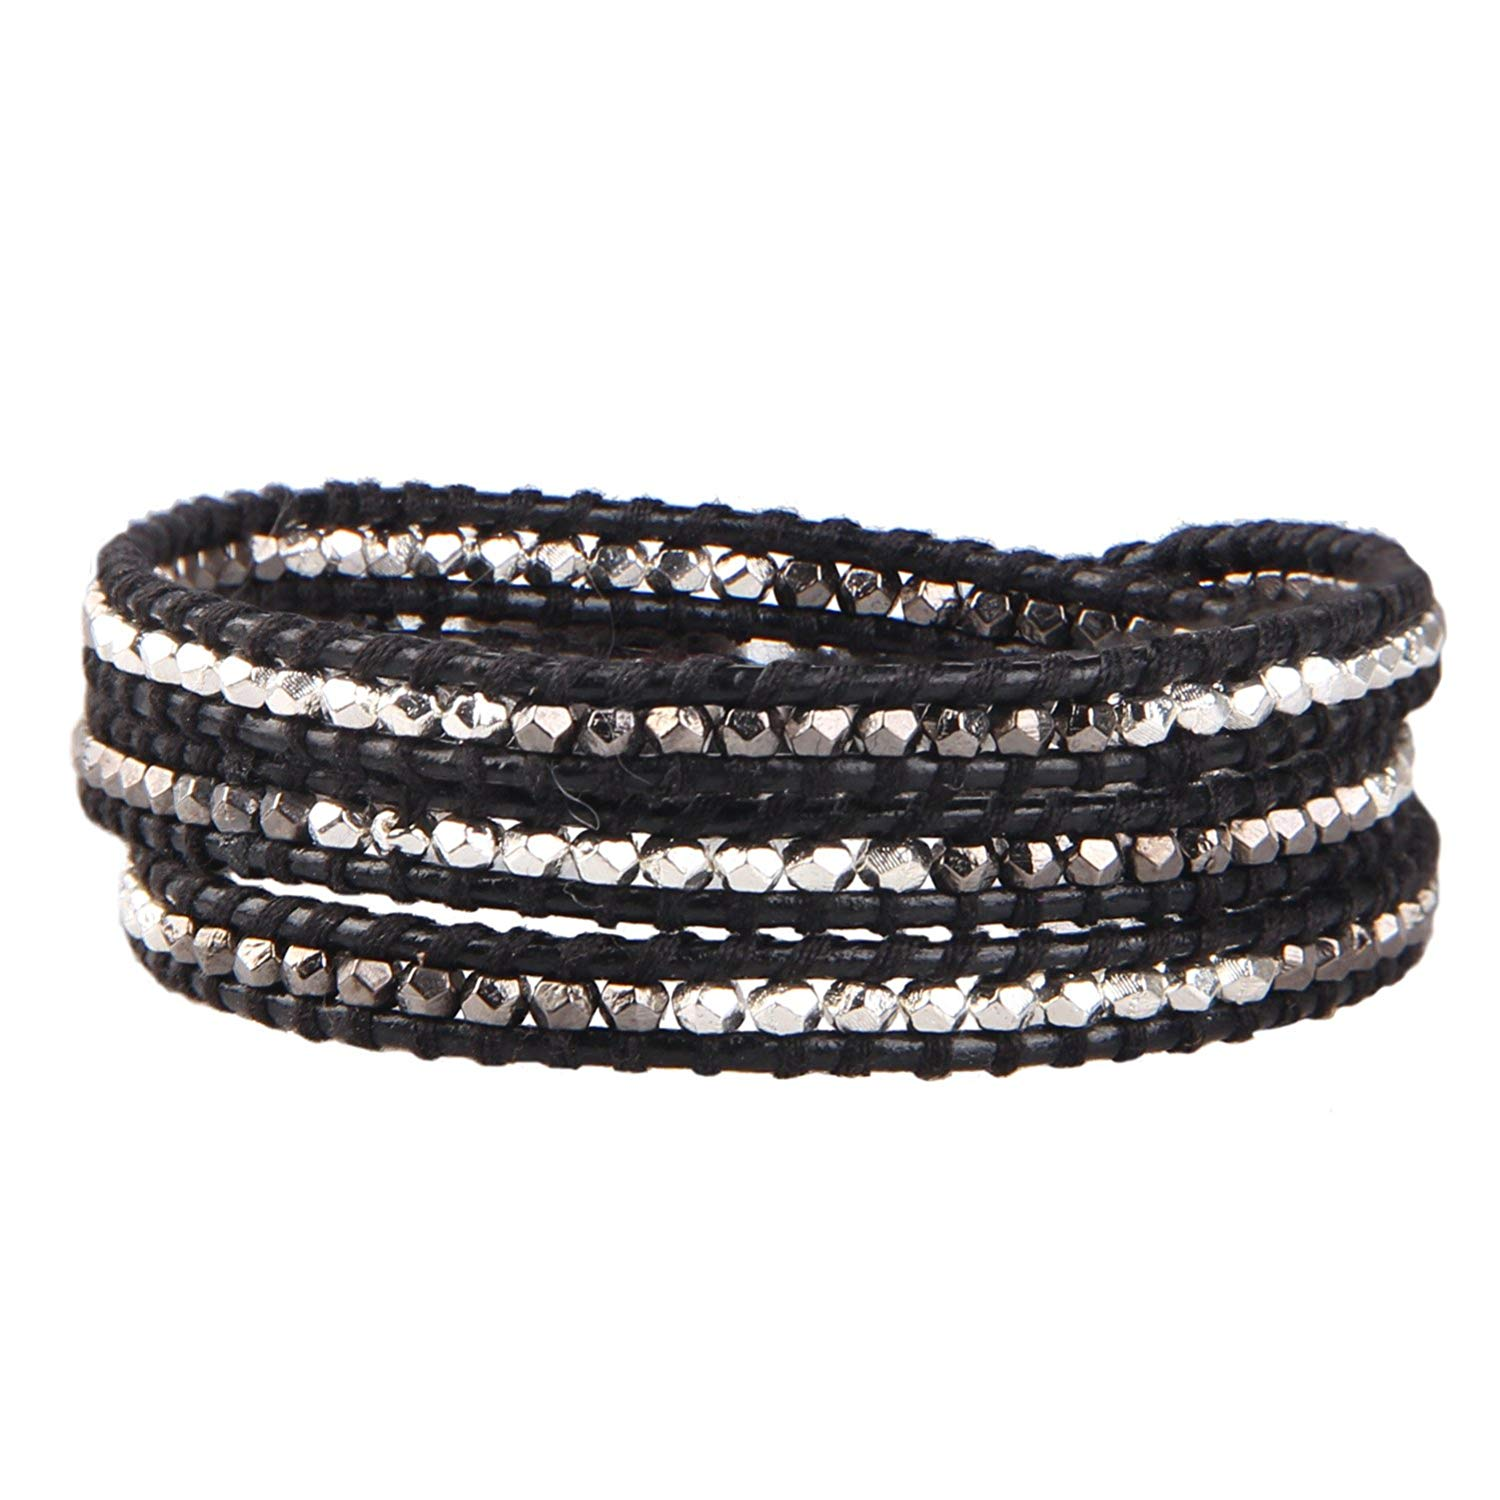 KELITCH Natural Blue Crystal Pearl Beads Mix Woven 3 Wrap Bracelet Handmade Fashion women Jewelry (Black)